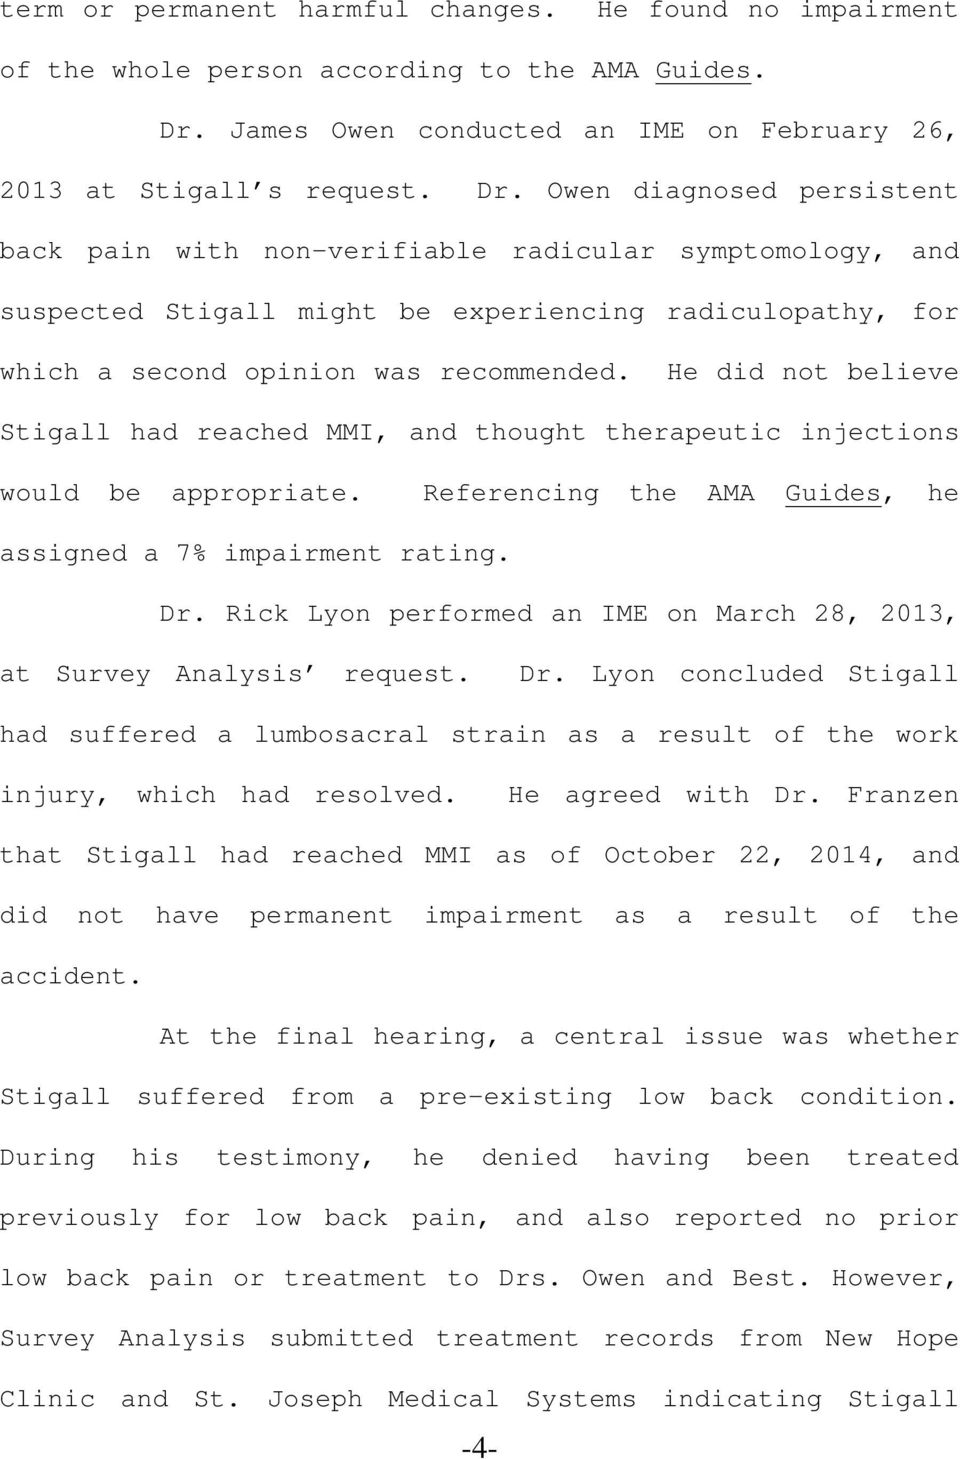 Owen diagnosed persistent back pain with non-verifiable radicular symptomology, and suspected Stigall might be experiencing radiculopathy, for which a second opinion was recommended.